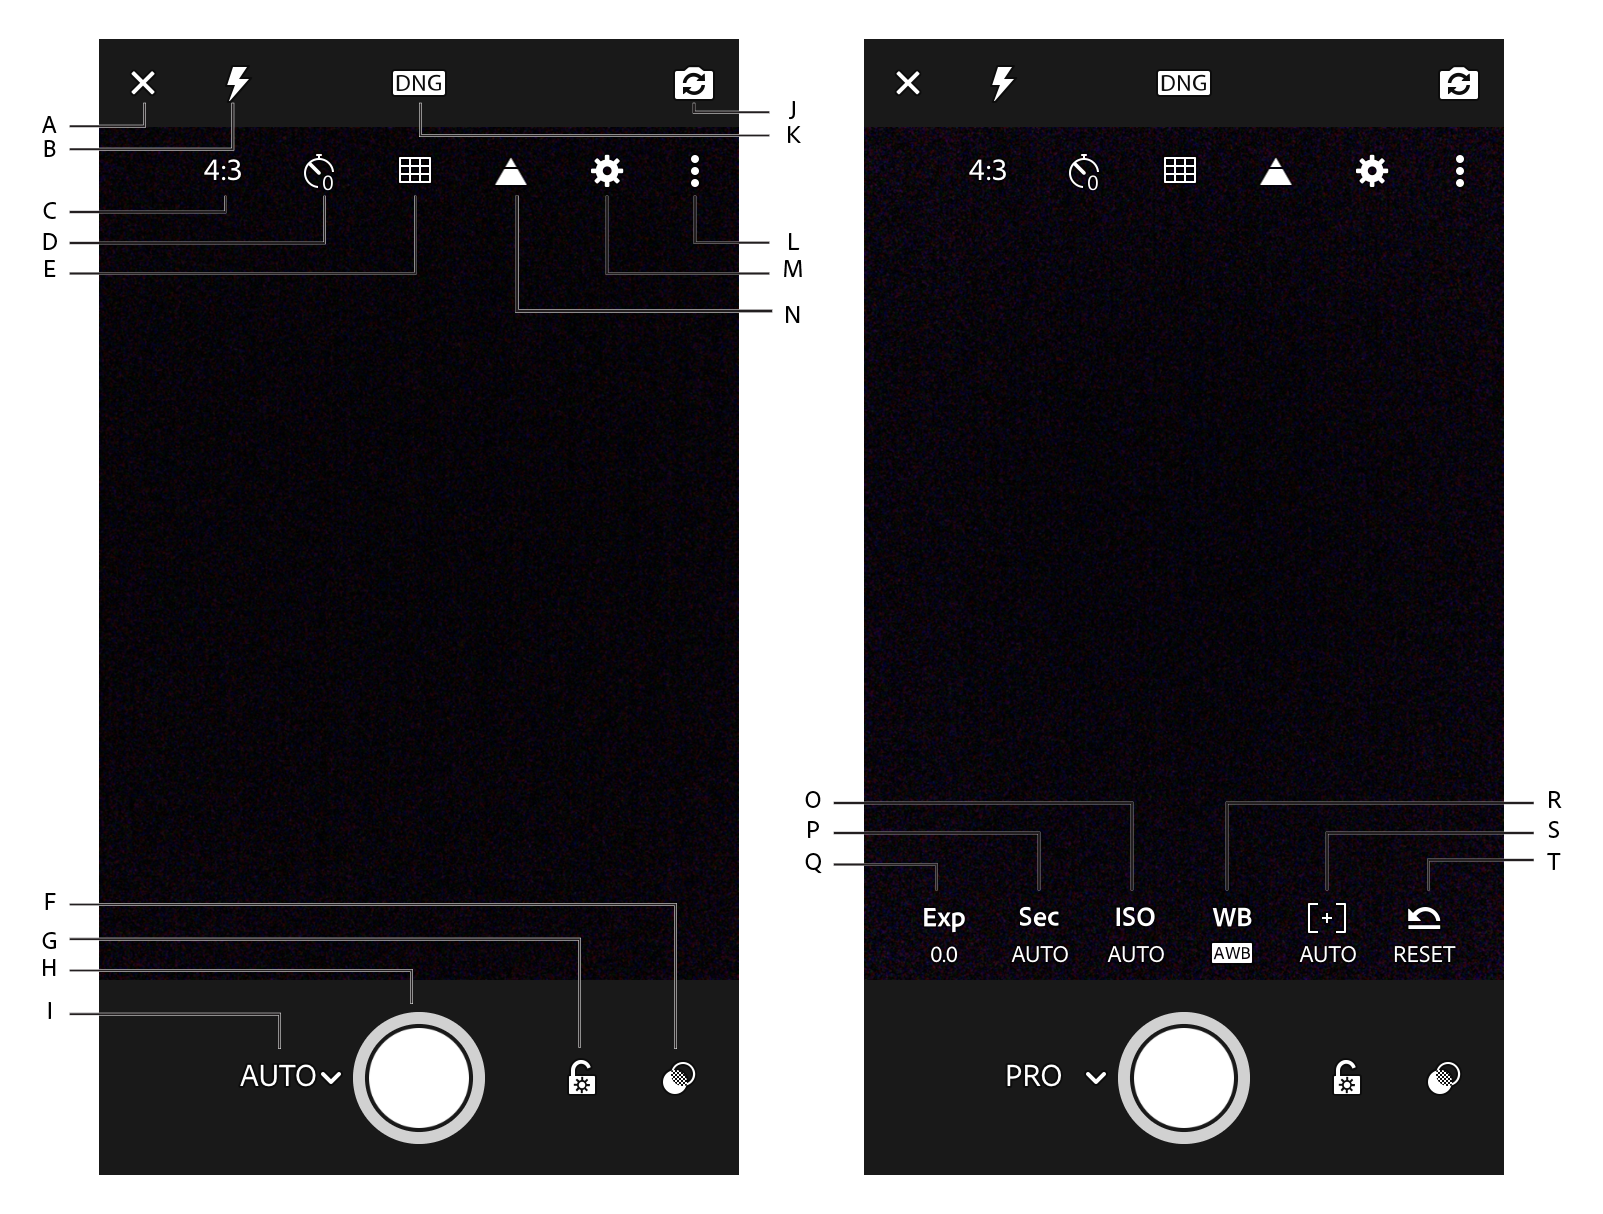 Lightroom Capture interface options